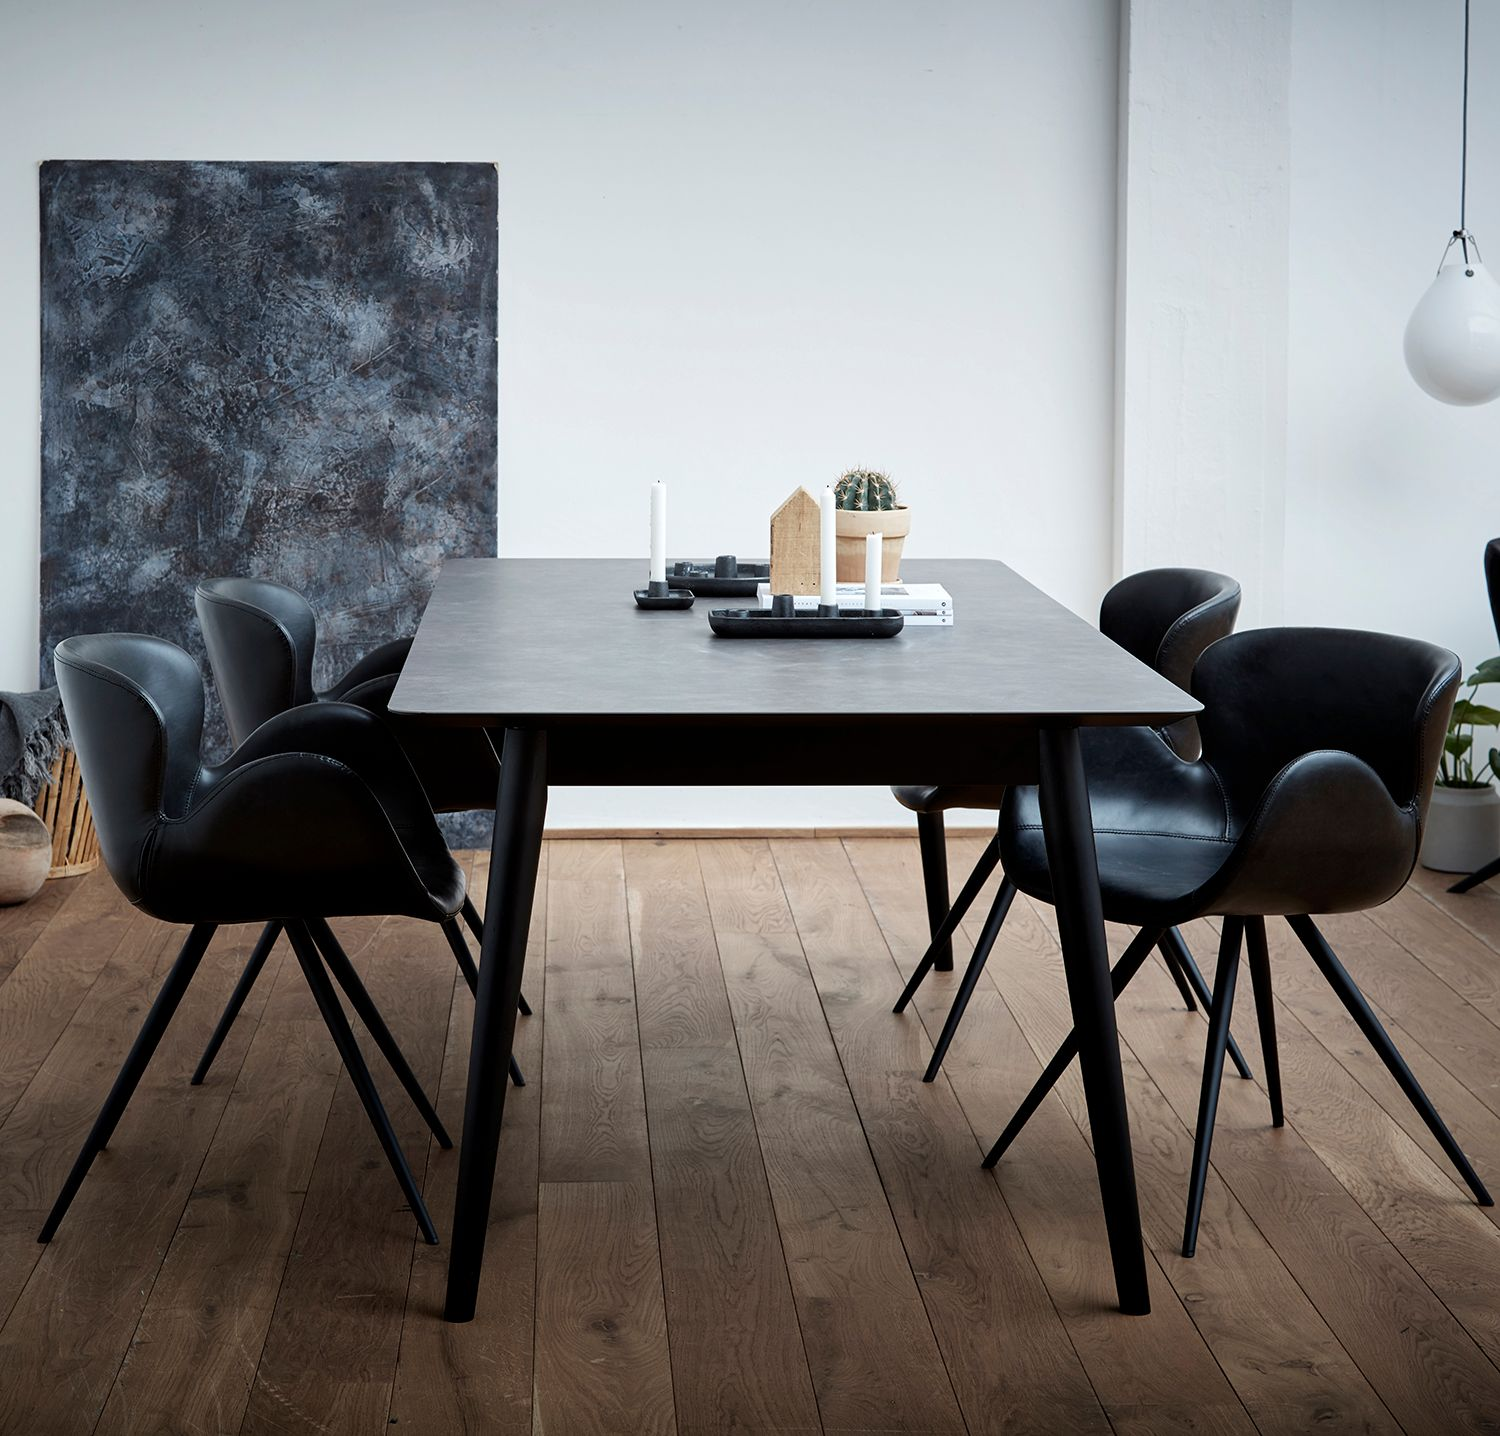 Sensational Gaia Chair Chairs Dan Form A S Mom Caraccident5 Cool Chair Designs And Ideas Caraccident5Info